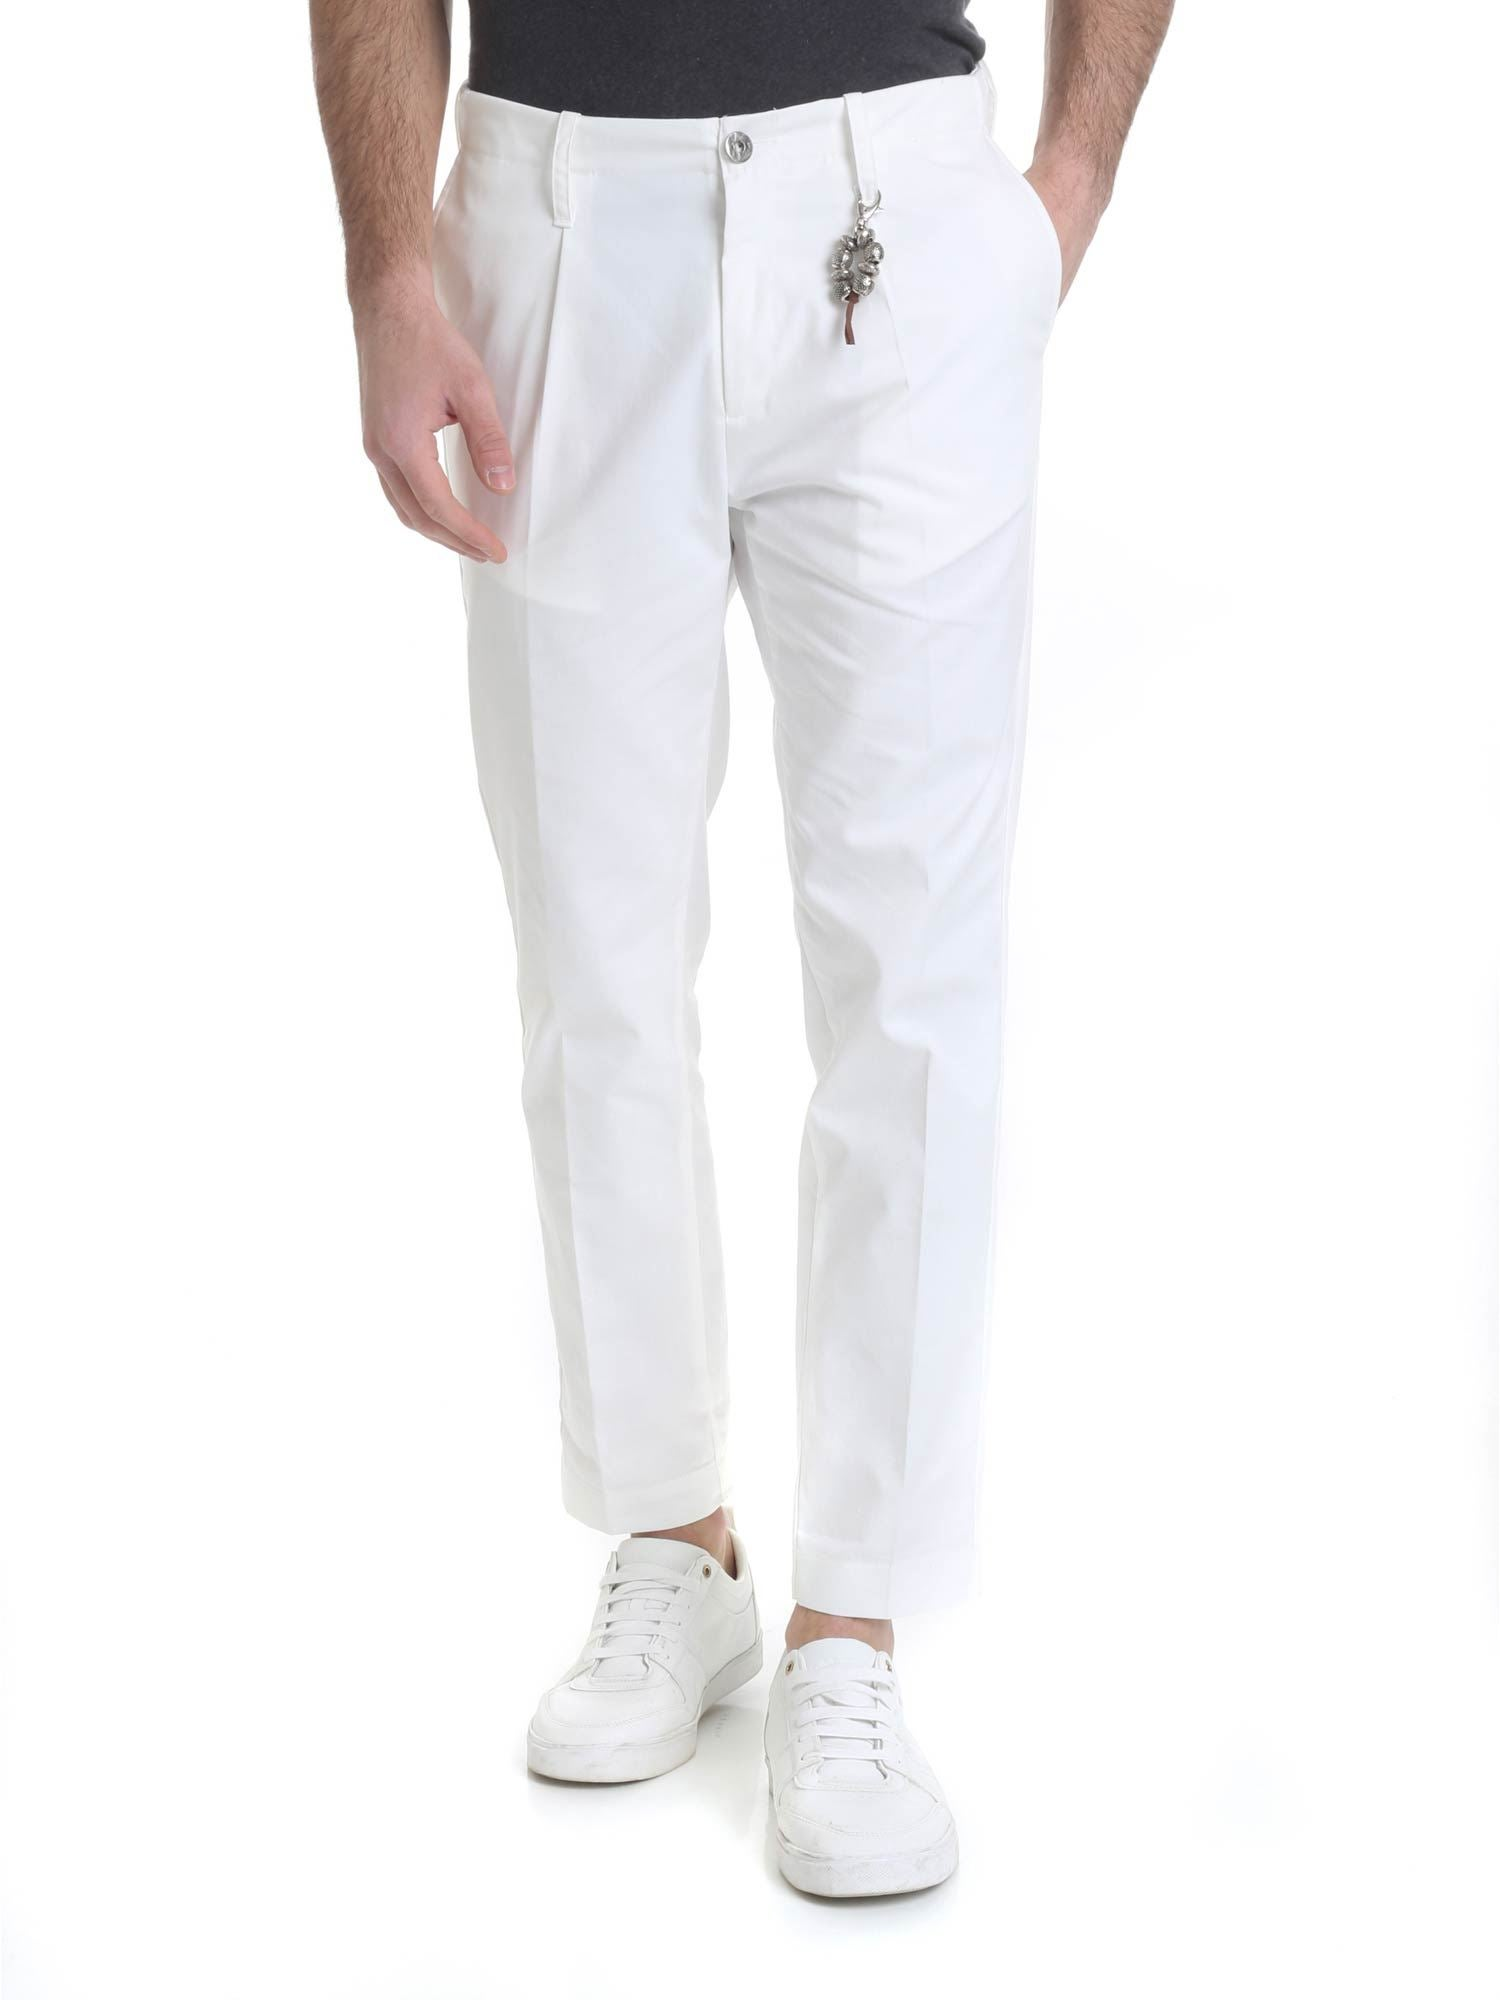 Image of Pantalone in cotone bianco 1 pince R92 C-B